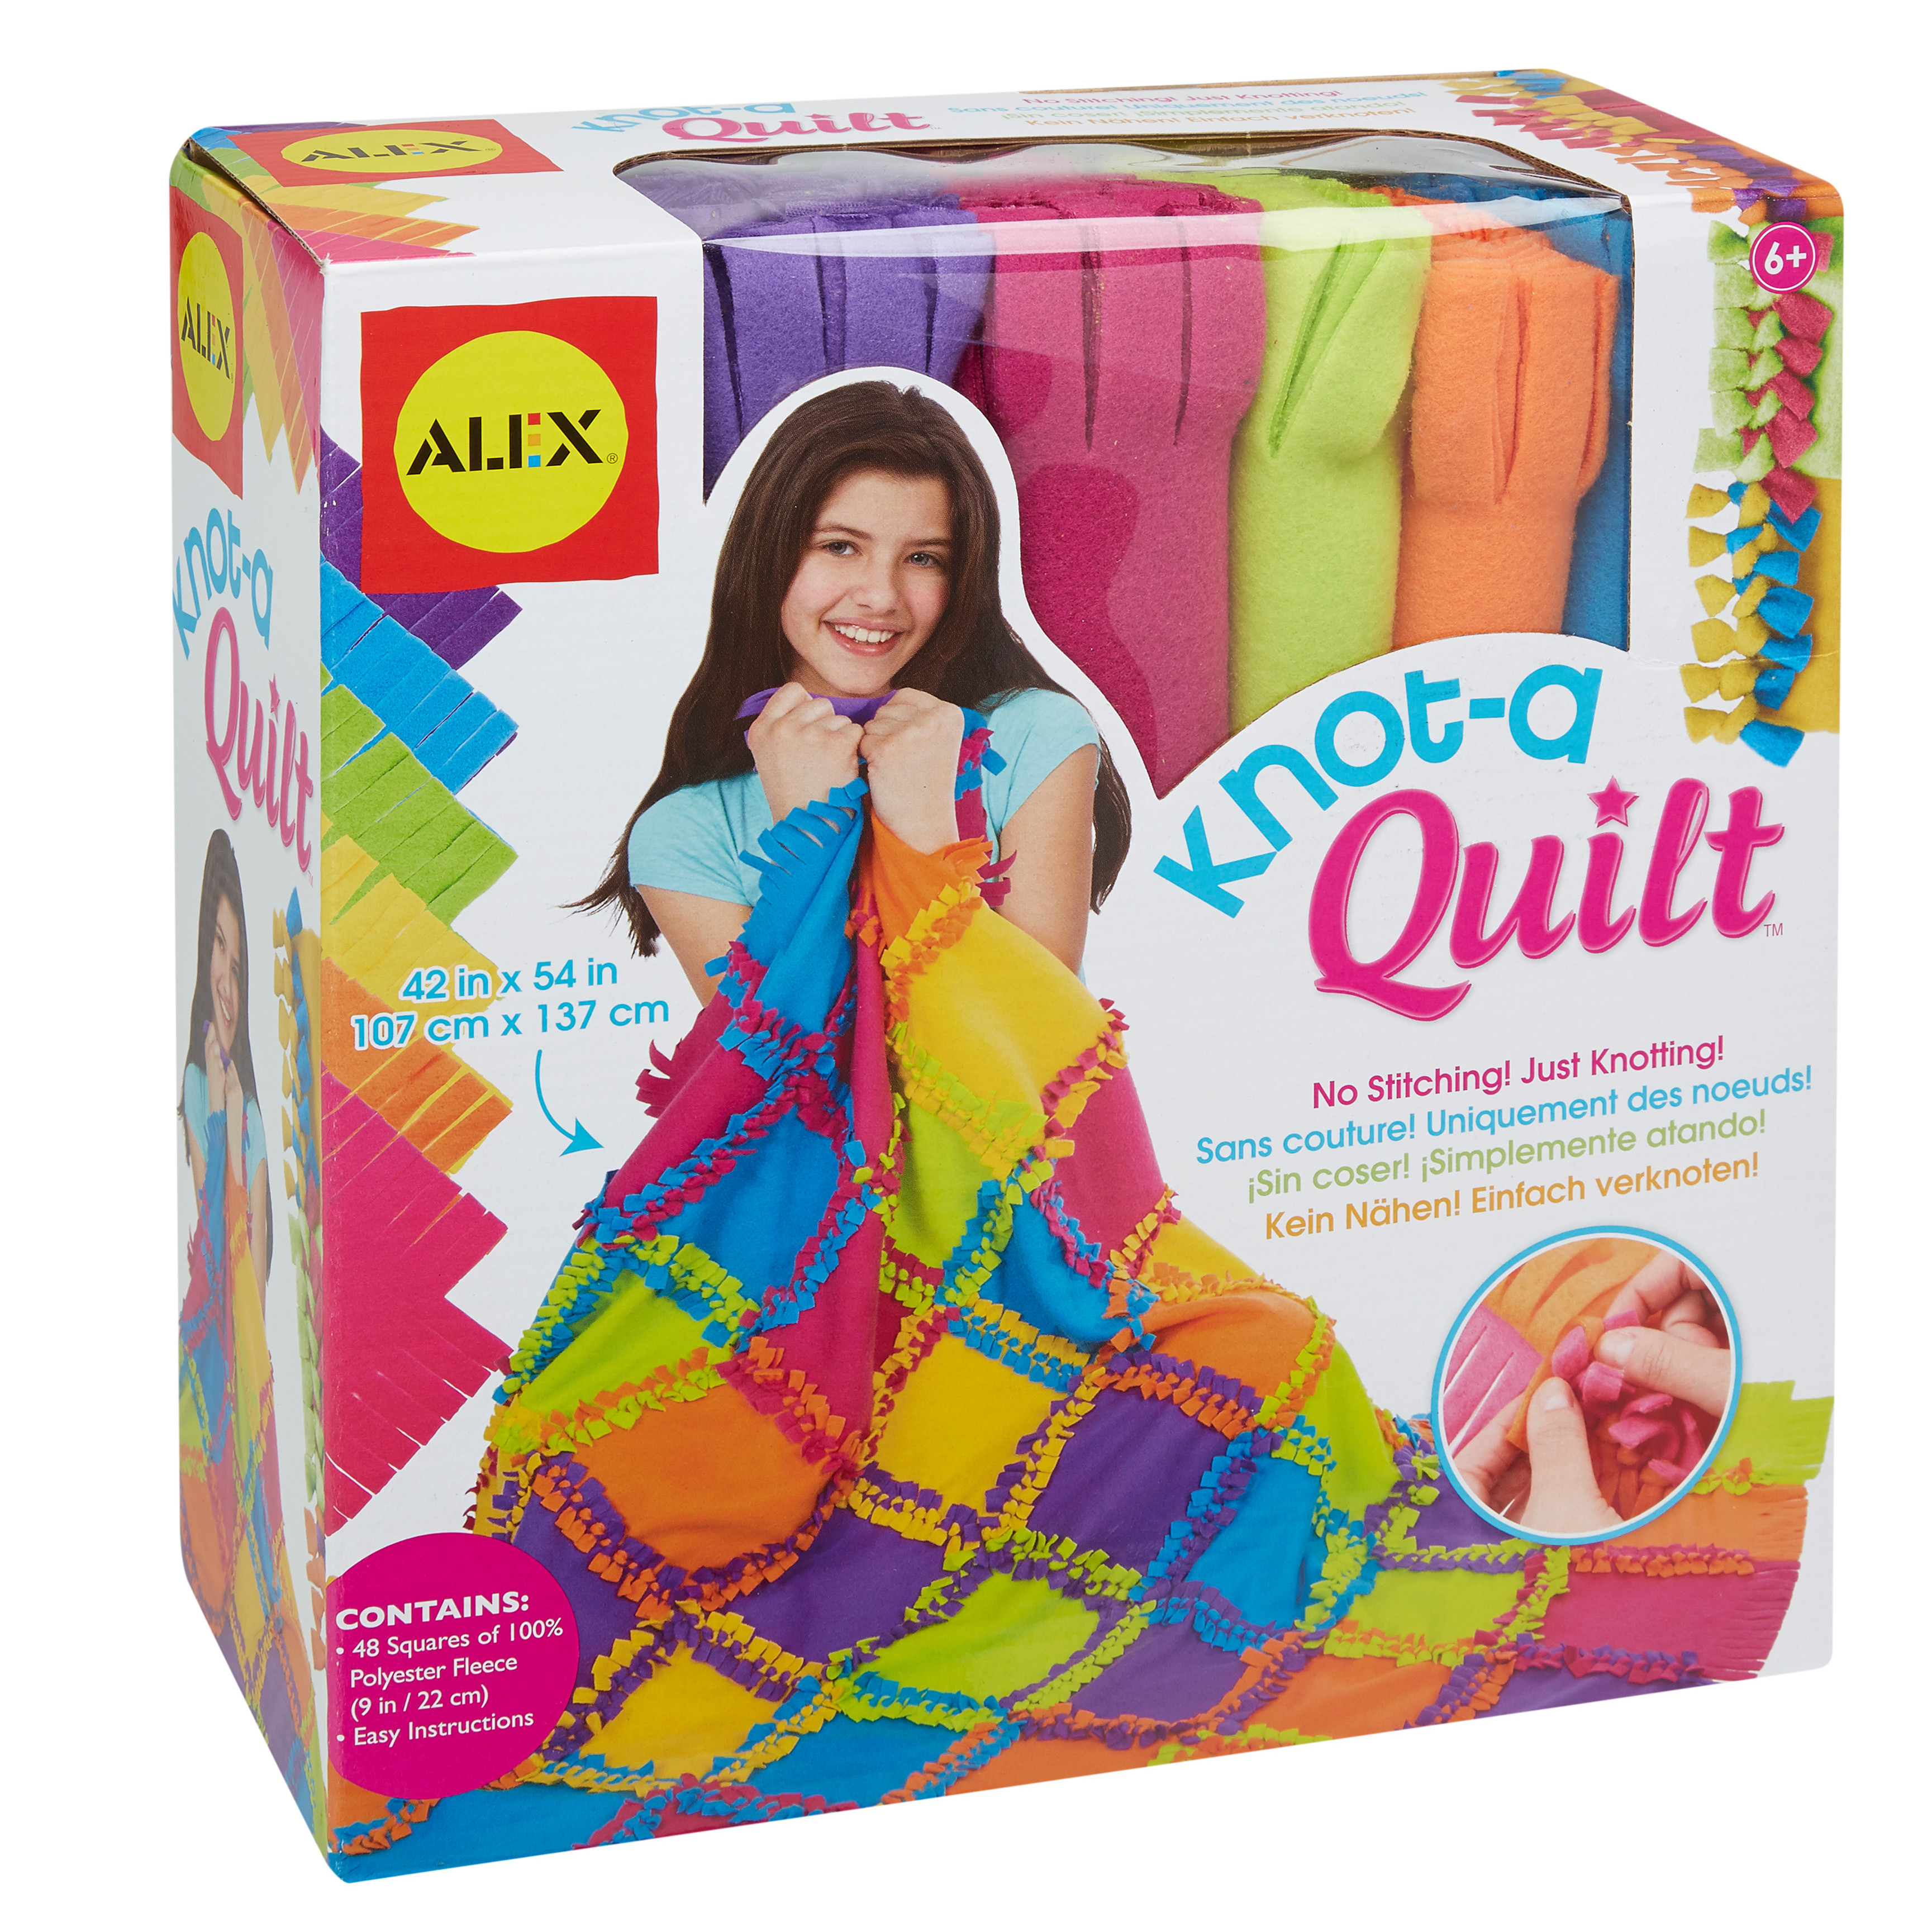 ALEX Toys Craft Knot A Quilt Kit